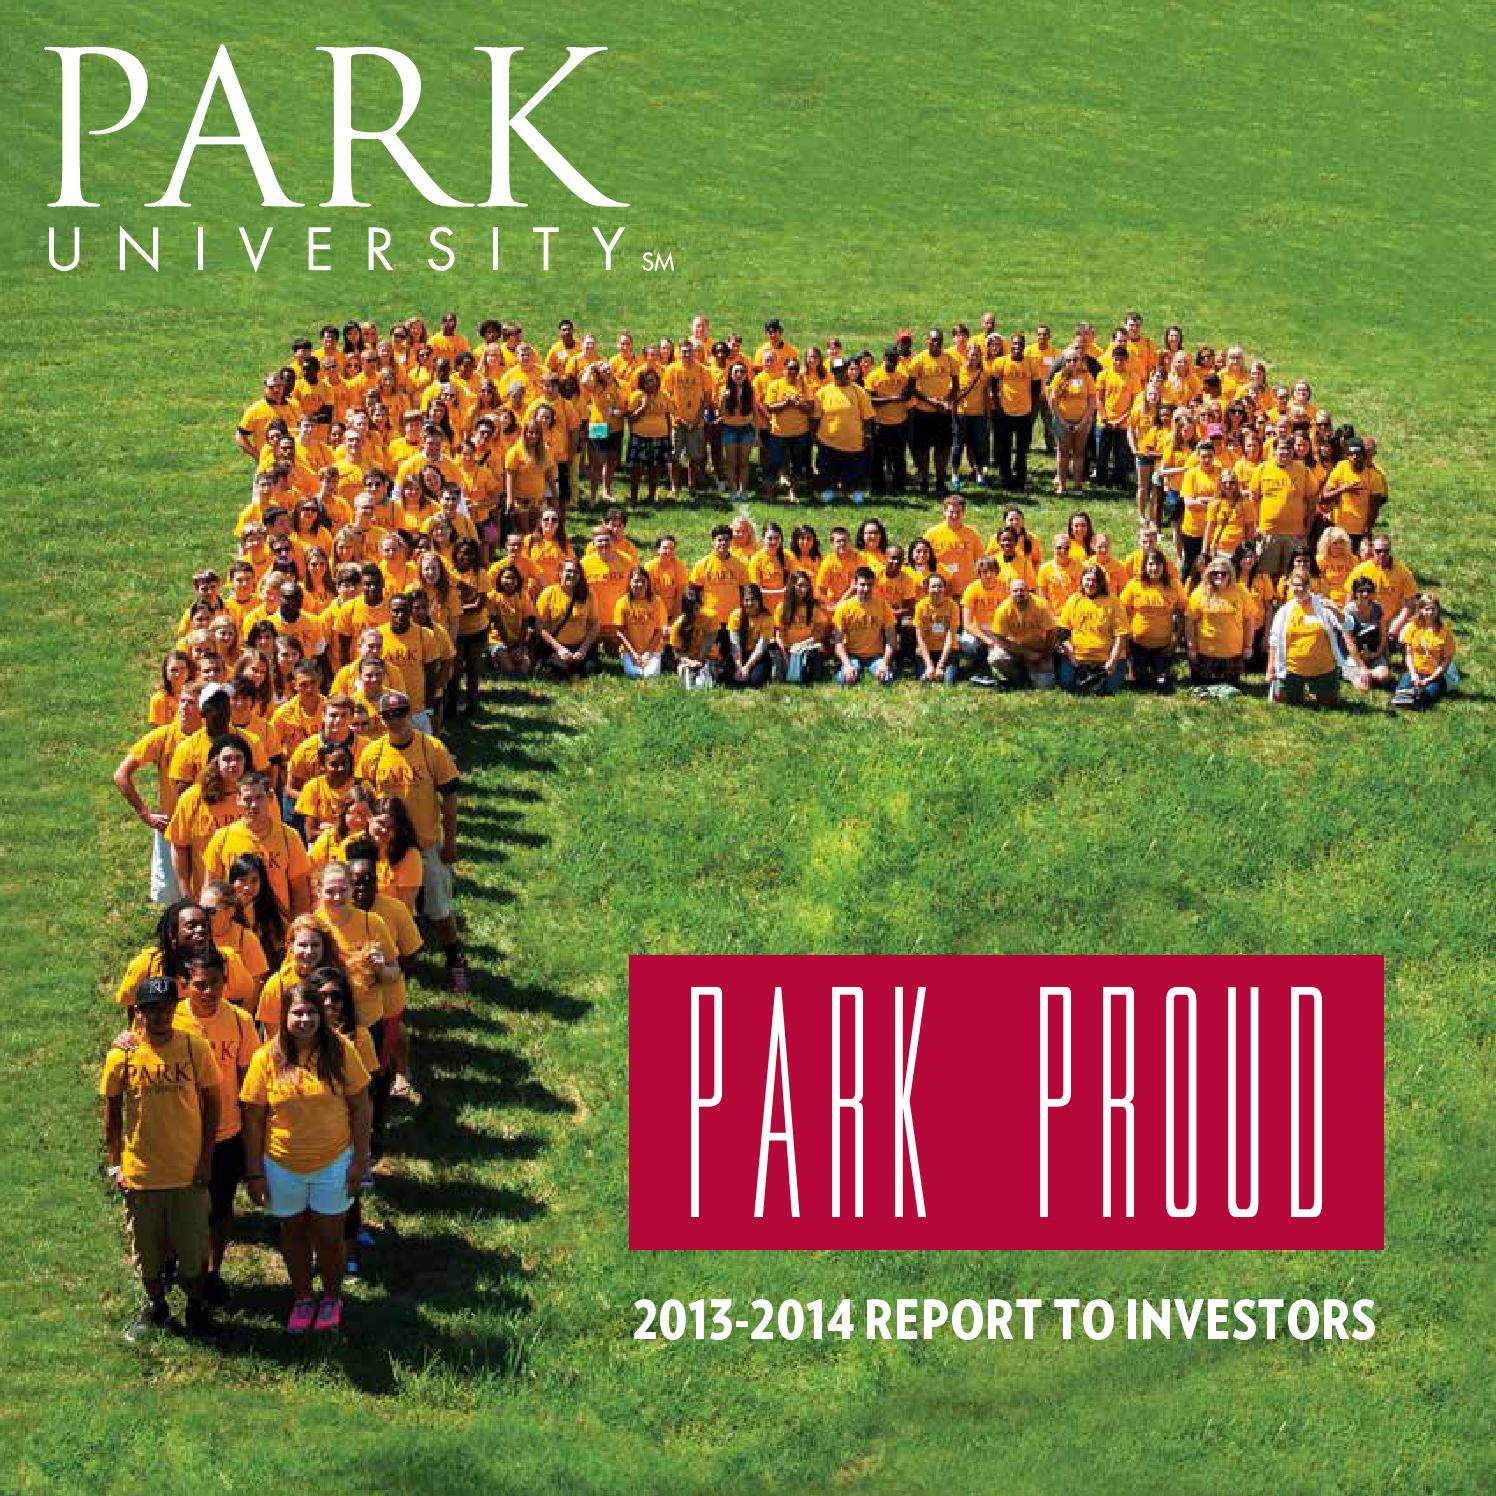 Report To Investors, 2013-2014 By Park University